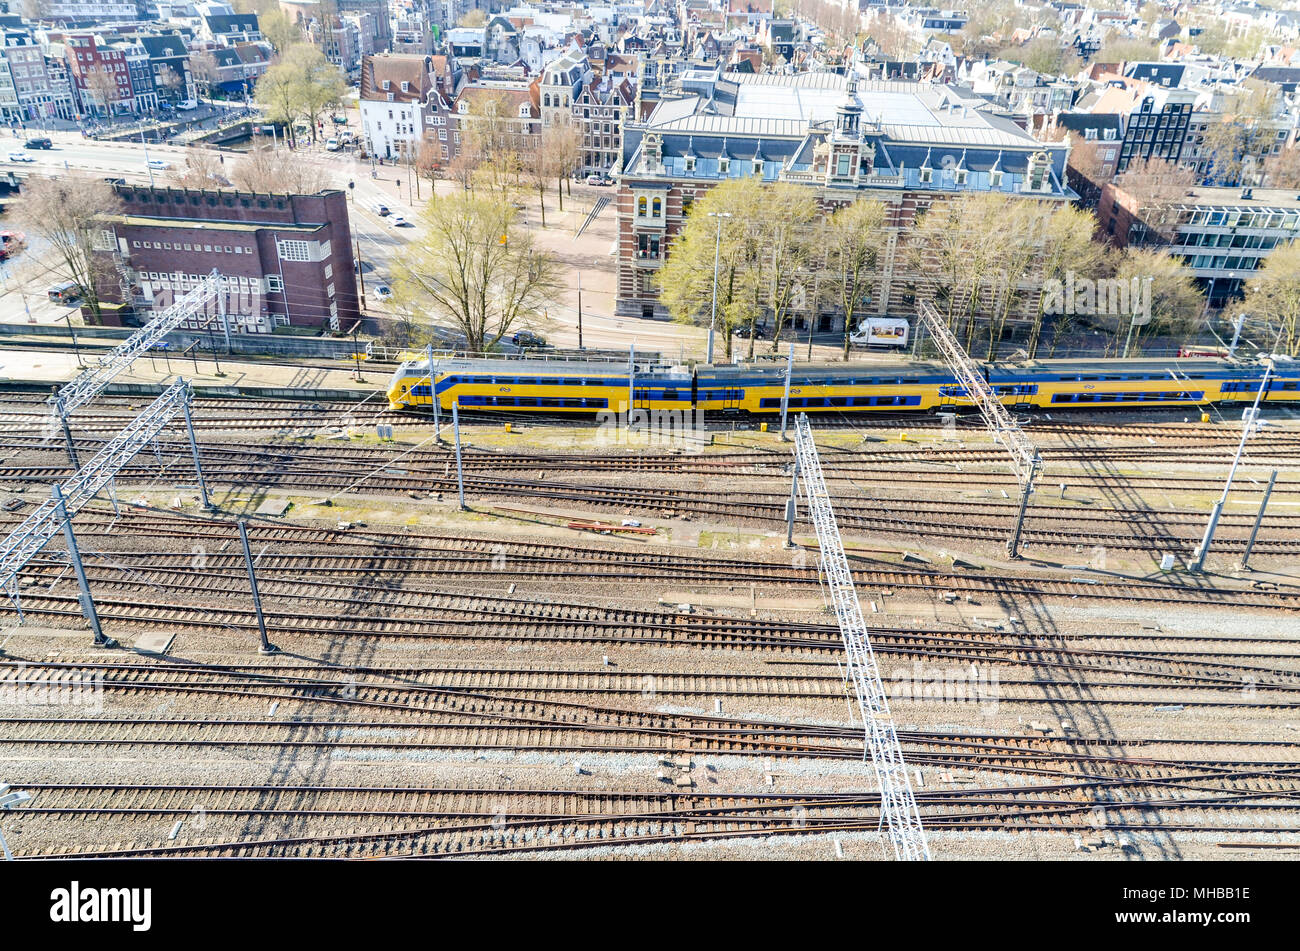 Aerial view of Amsterdam and Centraal Station, Amsterdam, Netherlands - Stock Image